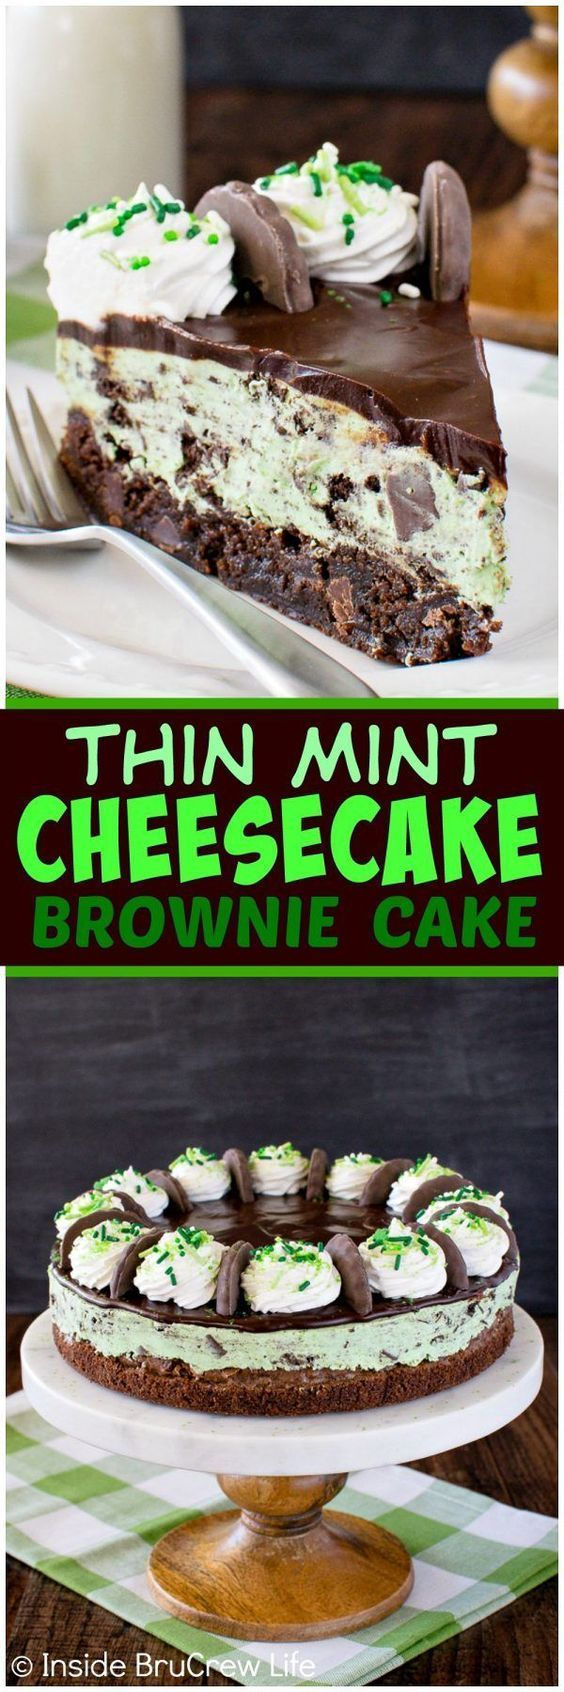 2799 Best Desserts Images On Pinterest Baking Conch Fritters And Kue Brownis By Nature Cakes Bali Thin Mint Cheesecake Brownie Cake Layers Of Chocolate No Bake Cookie Chewy Brownies Make This A Fun To